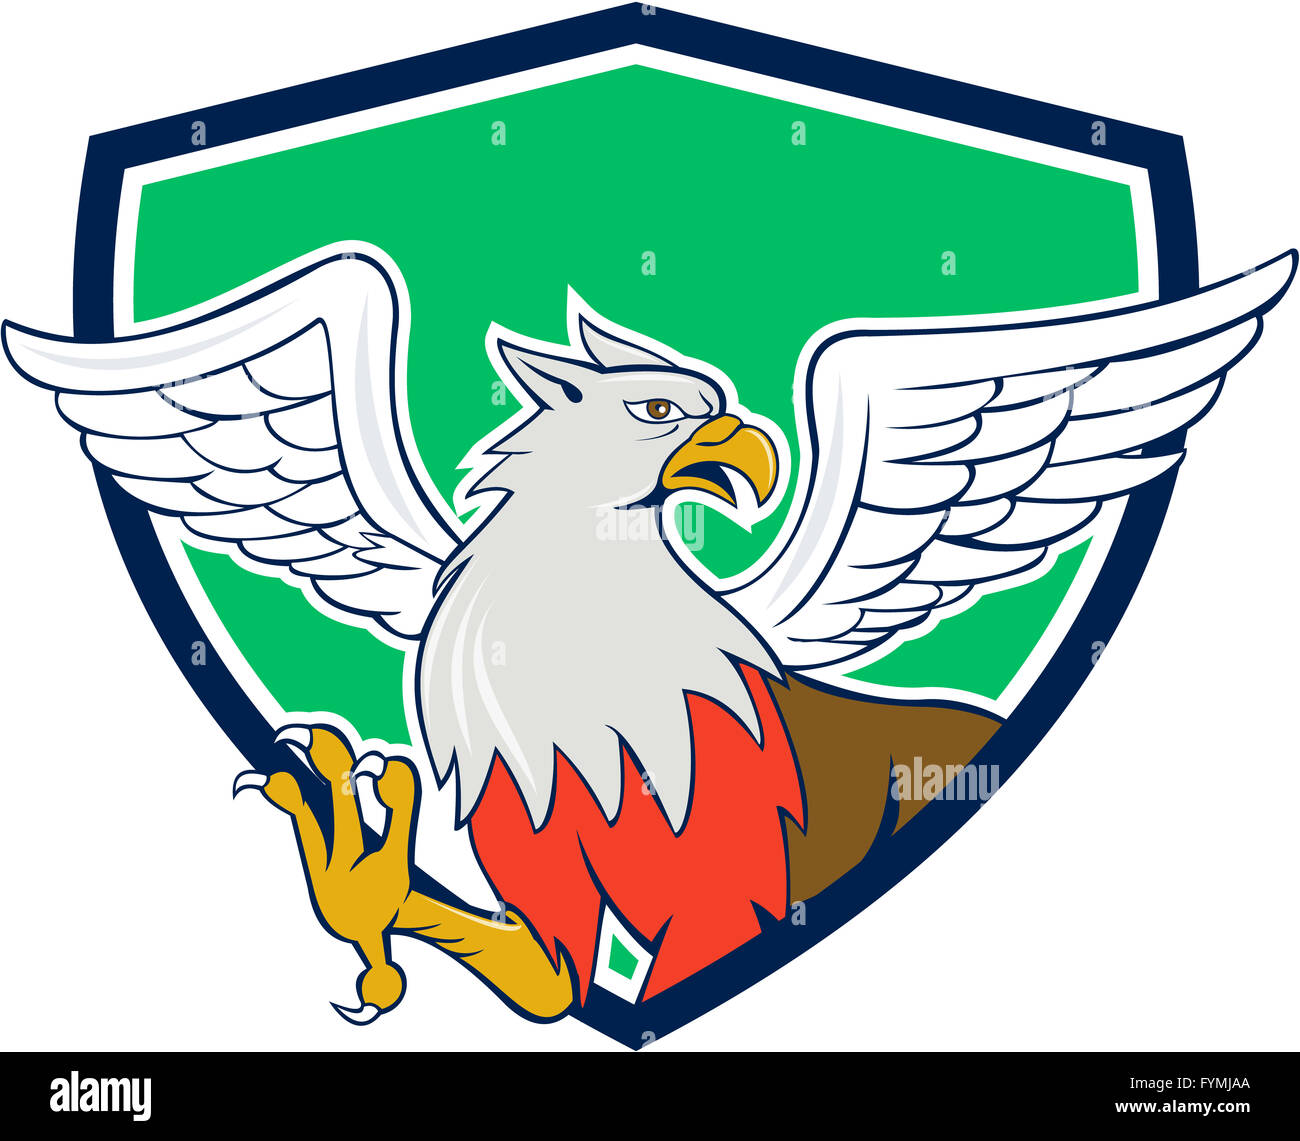 Hippogriff With Talons Shield Cartoon - Stock Image